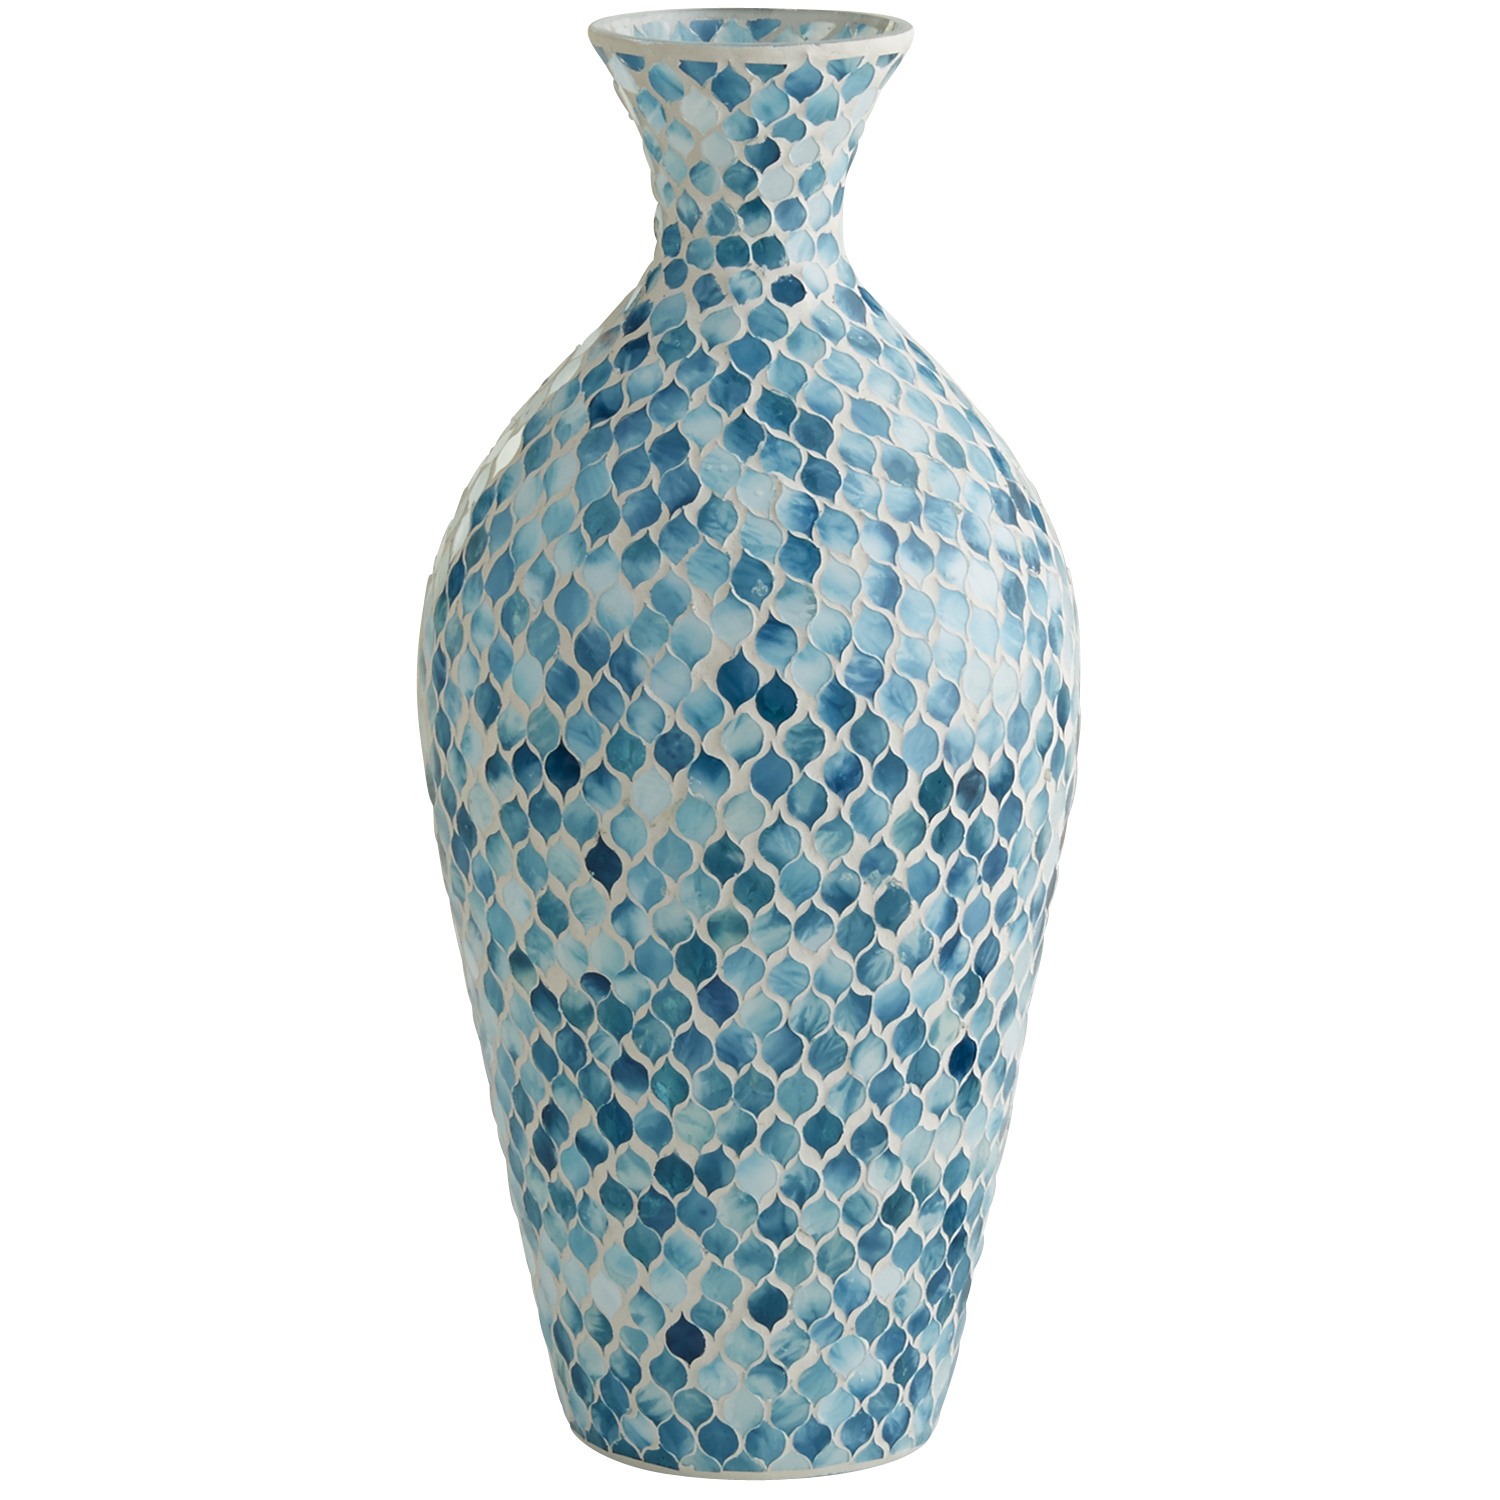 variation thumbnail of Mosaic Urn Vase - Blue & White